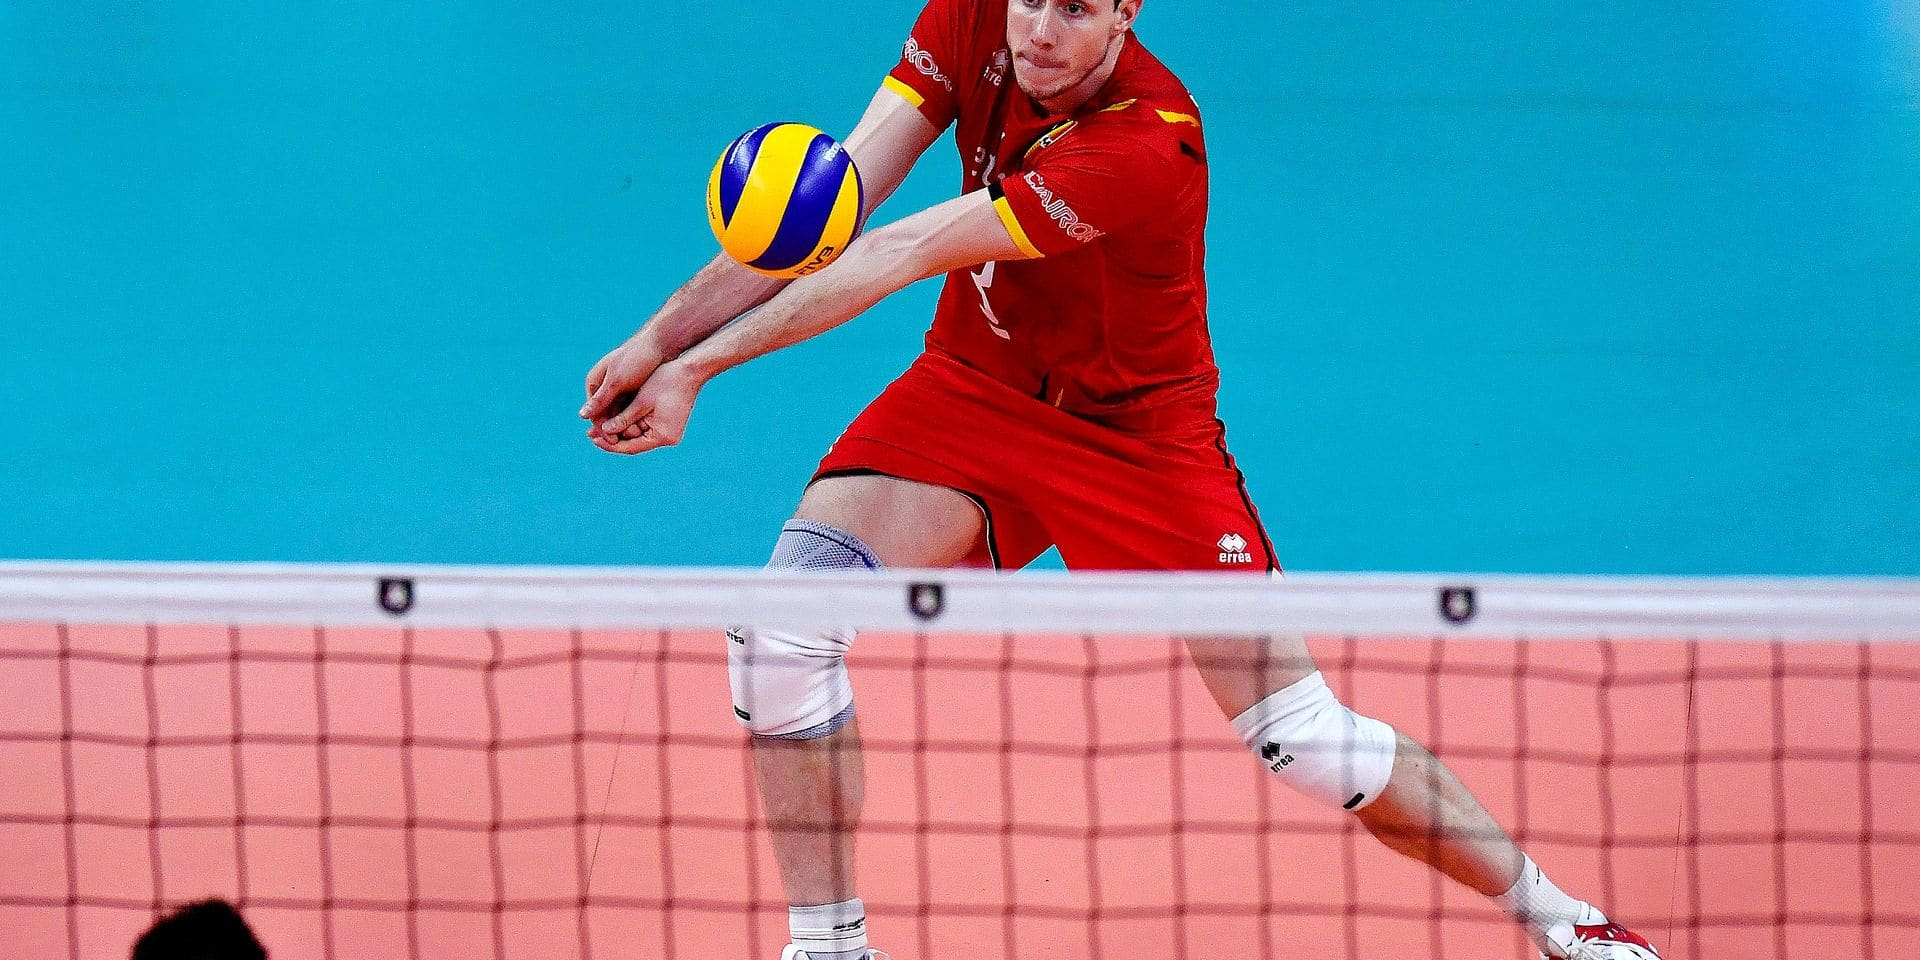 Belgium's Sam Deroo pictured in action during the fifth and last game in the group B, between the Red Dragons, Belgian national volleyball team, and Serbia, at the European volleyball championships, Wednesday 18 September 2019, in Antwerp. BELGA PHOTO DIRK WAEM